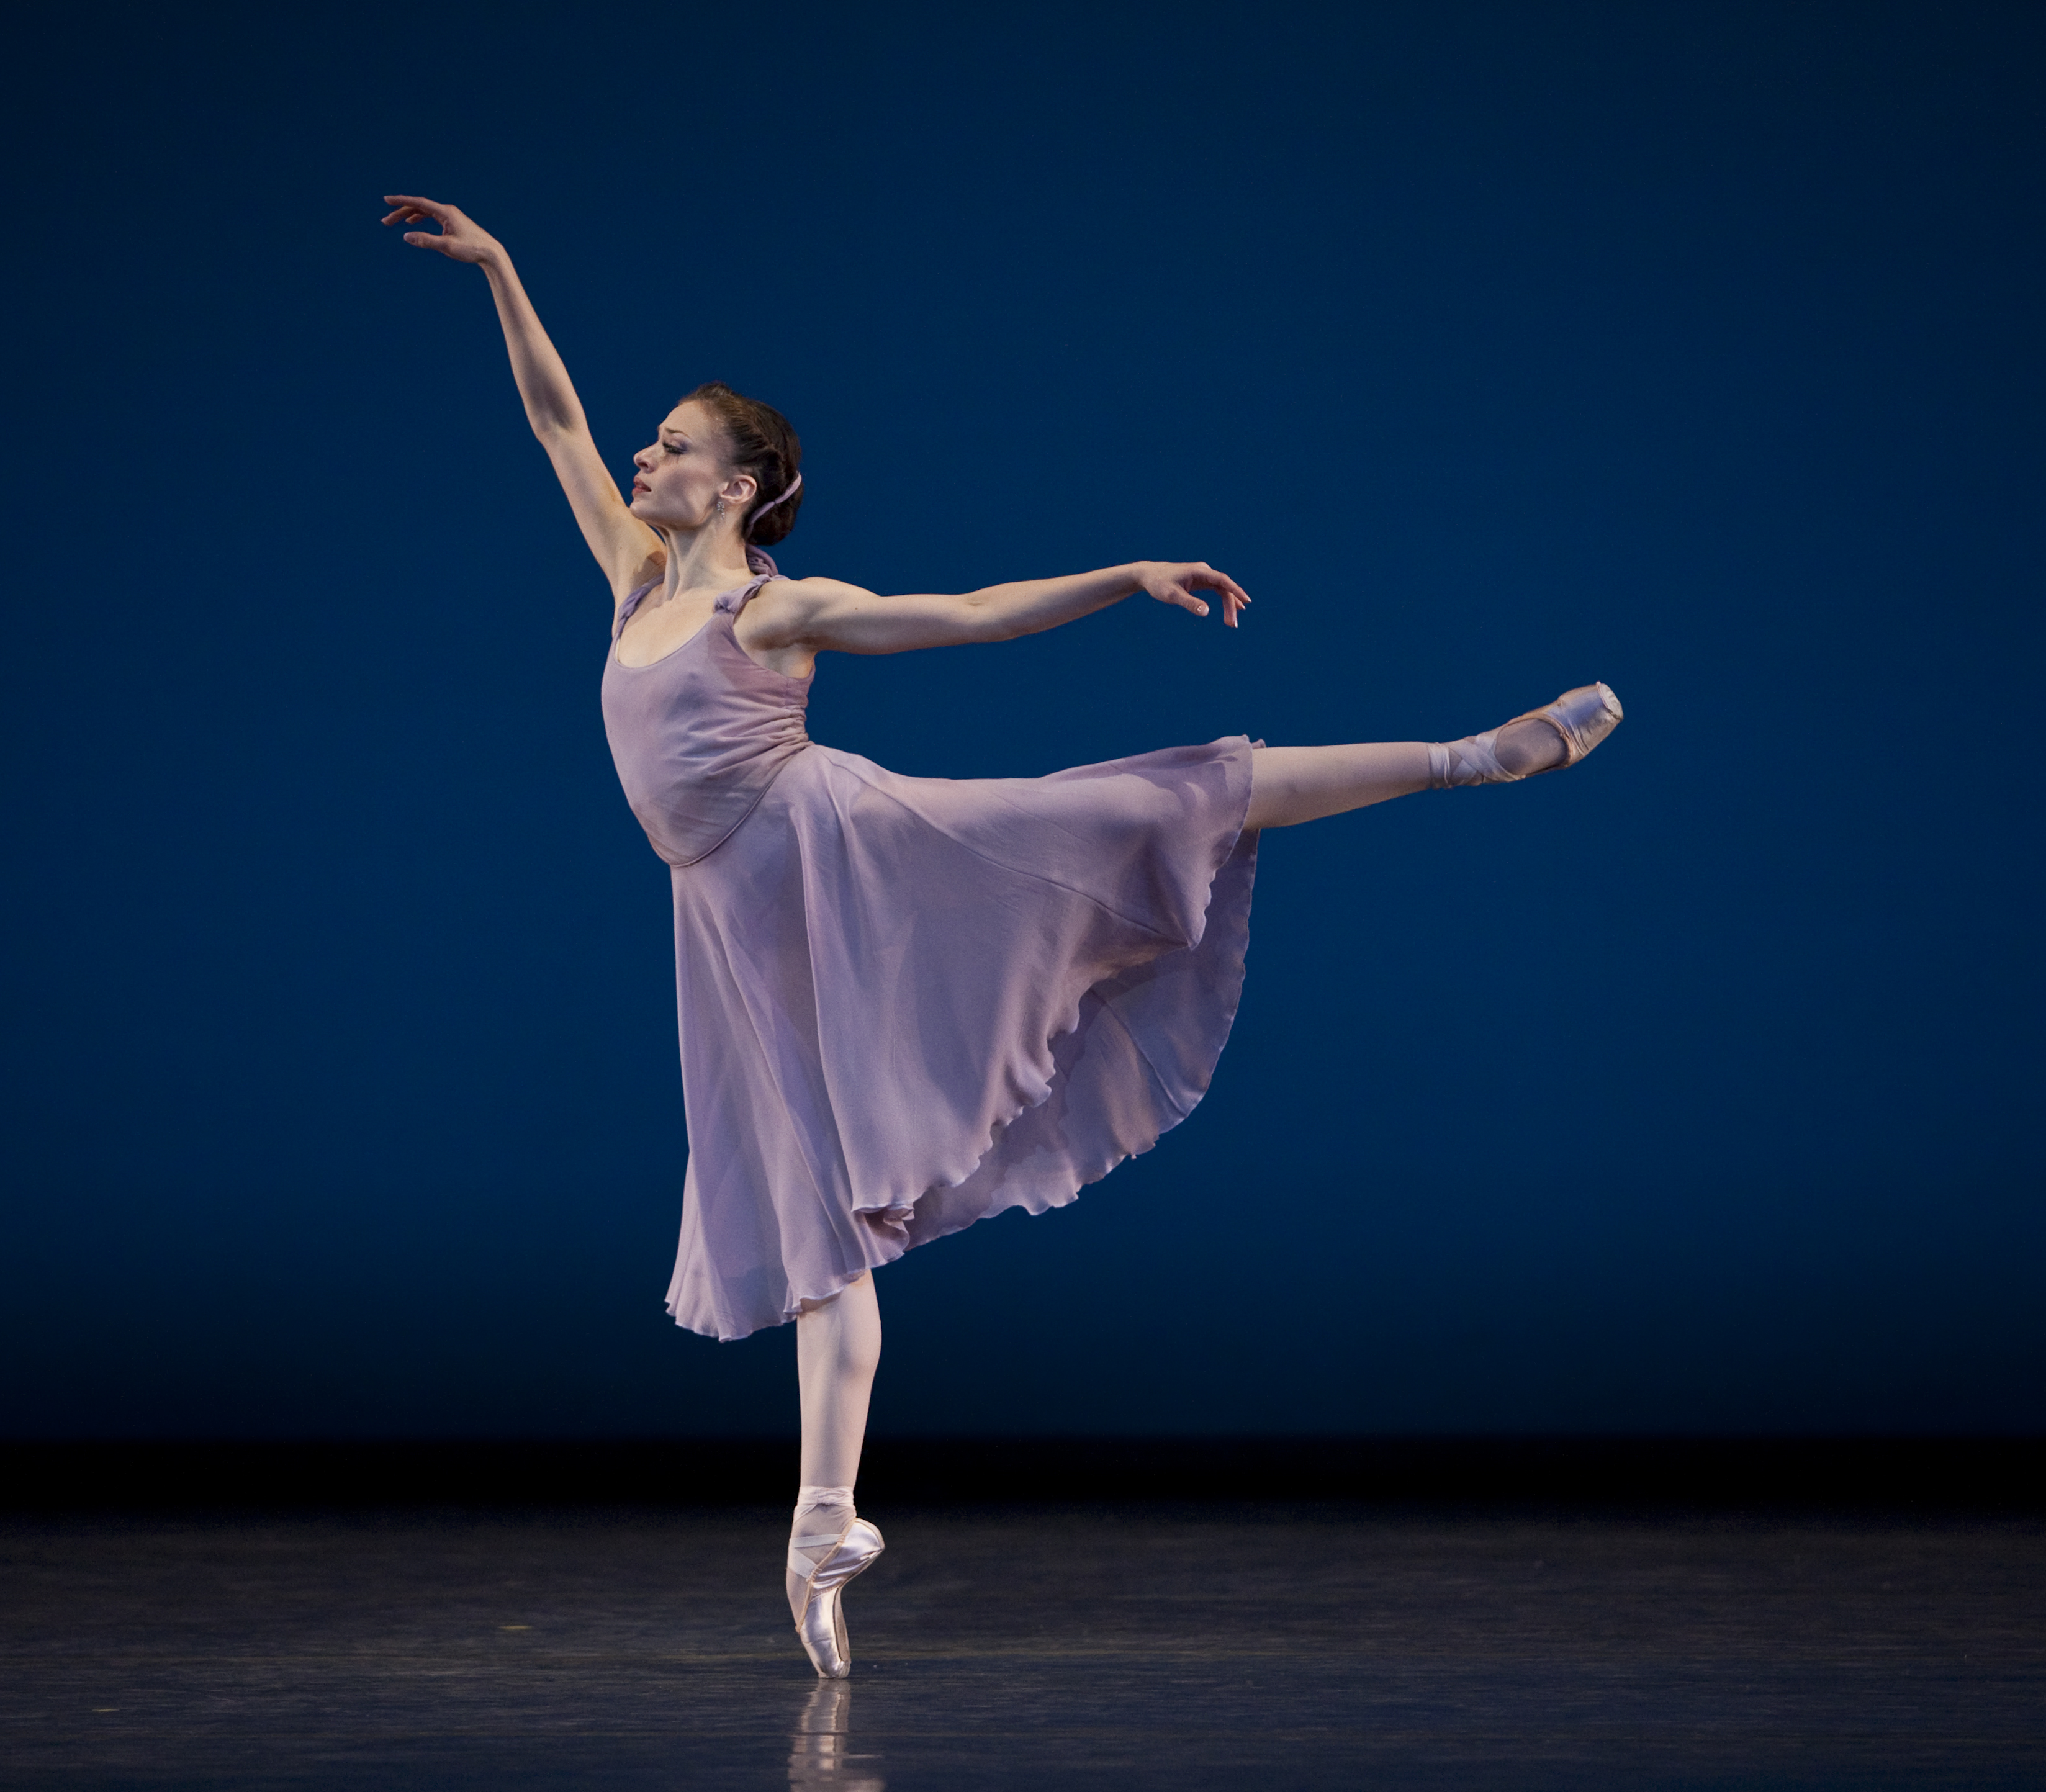 dancer stands on her pointe shoe